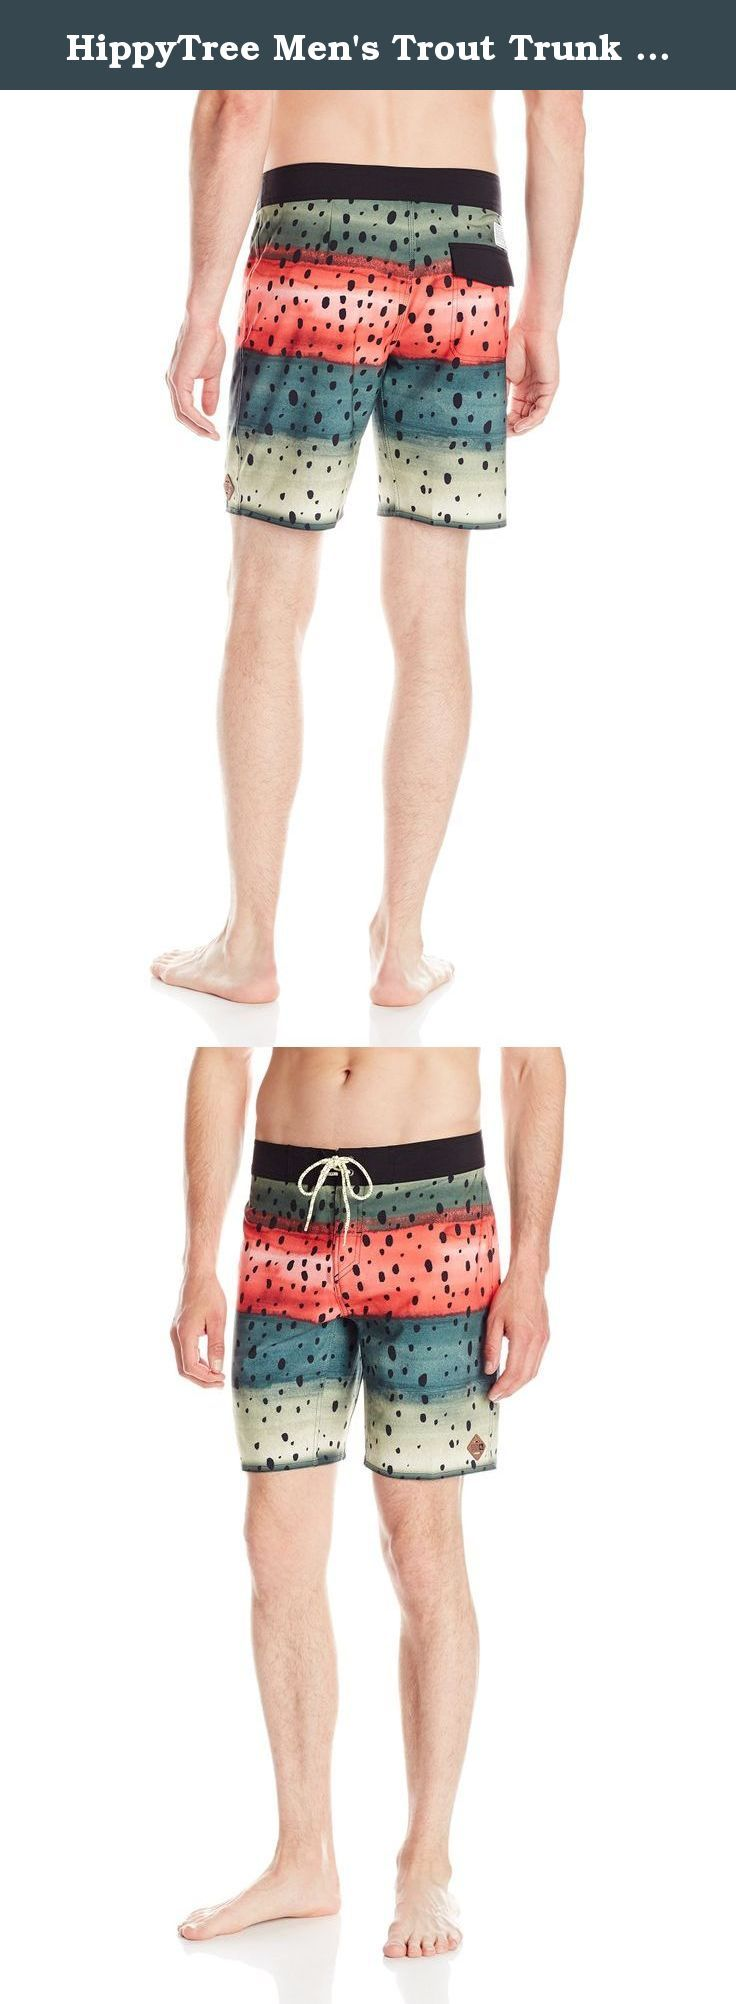 """HippyTree Men's Trout Trunk Shorts, 36, Black. HippyTree is the original """"surf & stone"""" apparel company. Founded in a Hermosa beach garage in 2004 by a local surfer, climber, and artist, HippyTree is dedicated to designing products and graphics that embody the surf and climbing lifestyle. Marked by the green tree logo, HippyTree is committed to softening its environmental impact by using eco-friendly materials and manufacturing. HippyTree apparel is sold in surf, outdoor, and specialty..."""